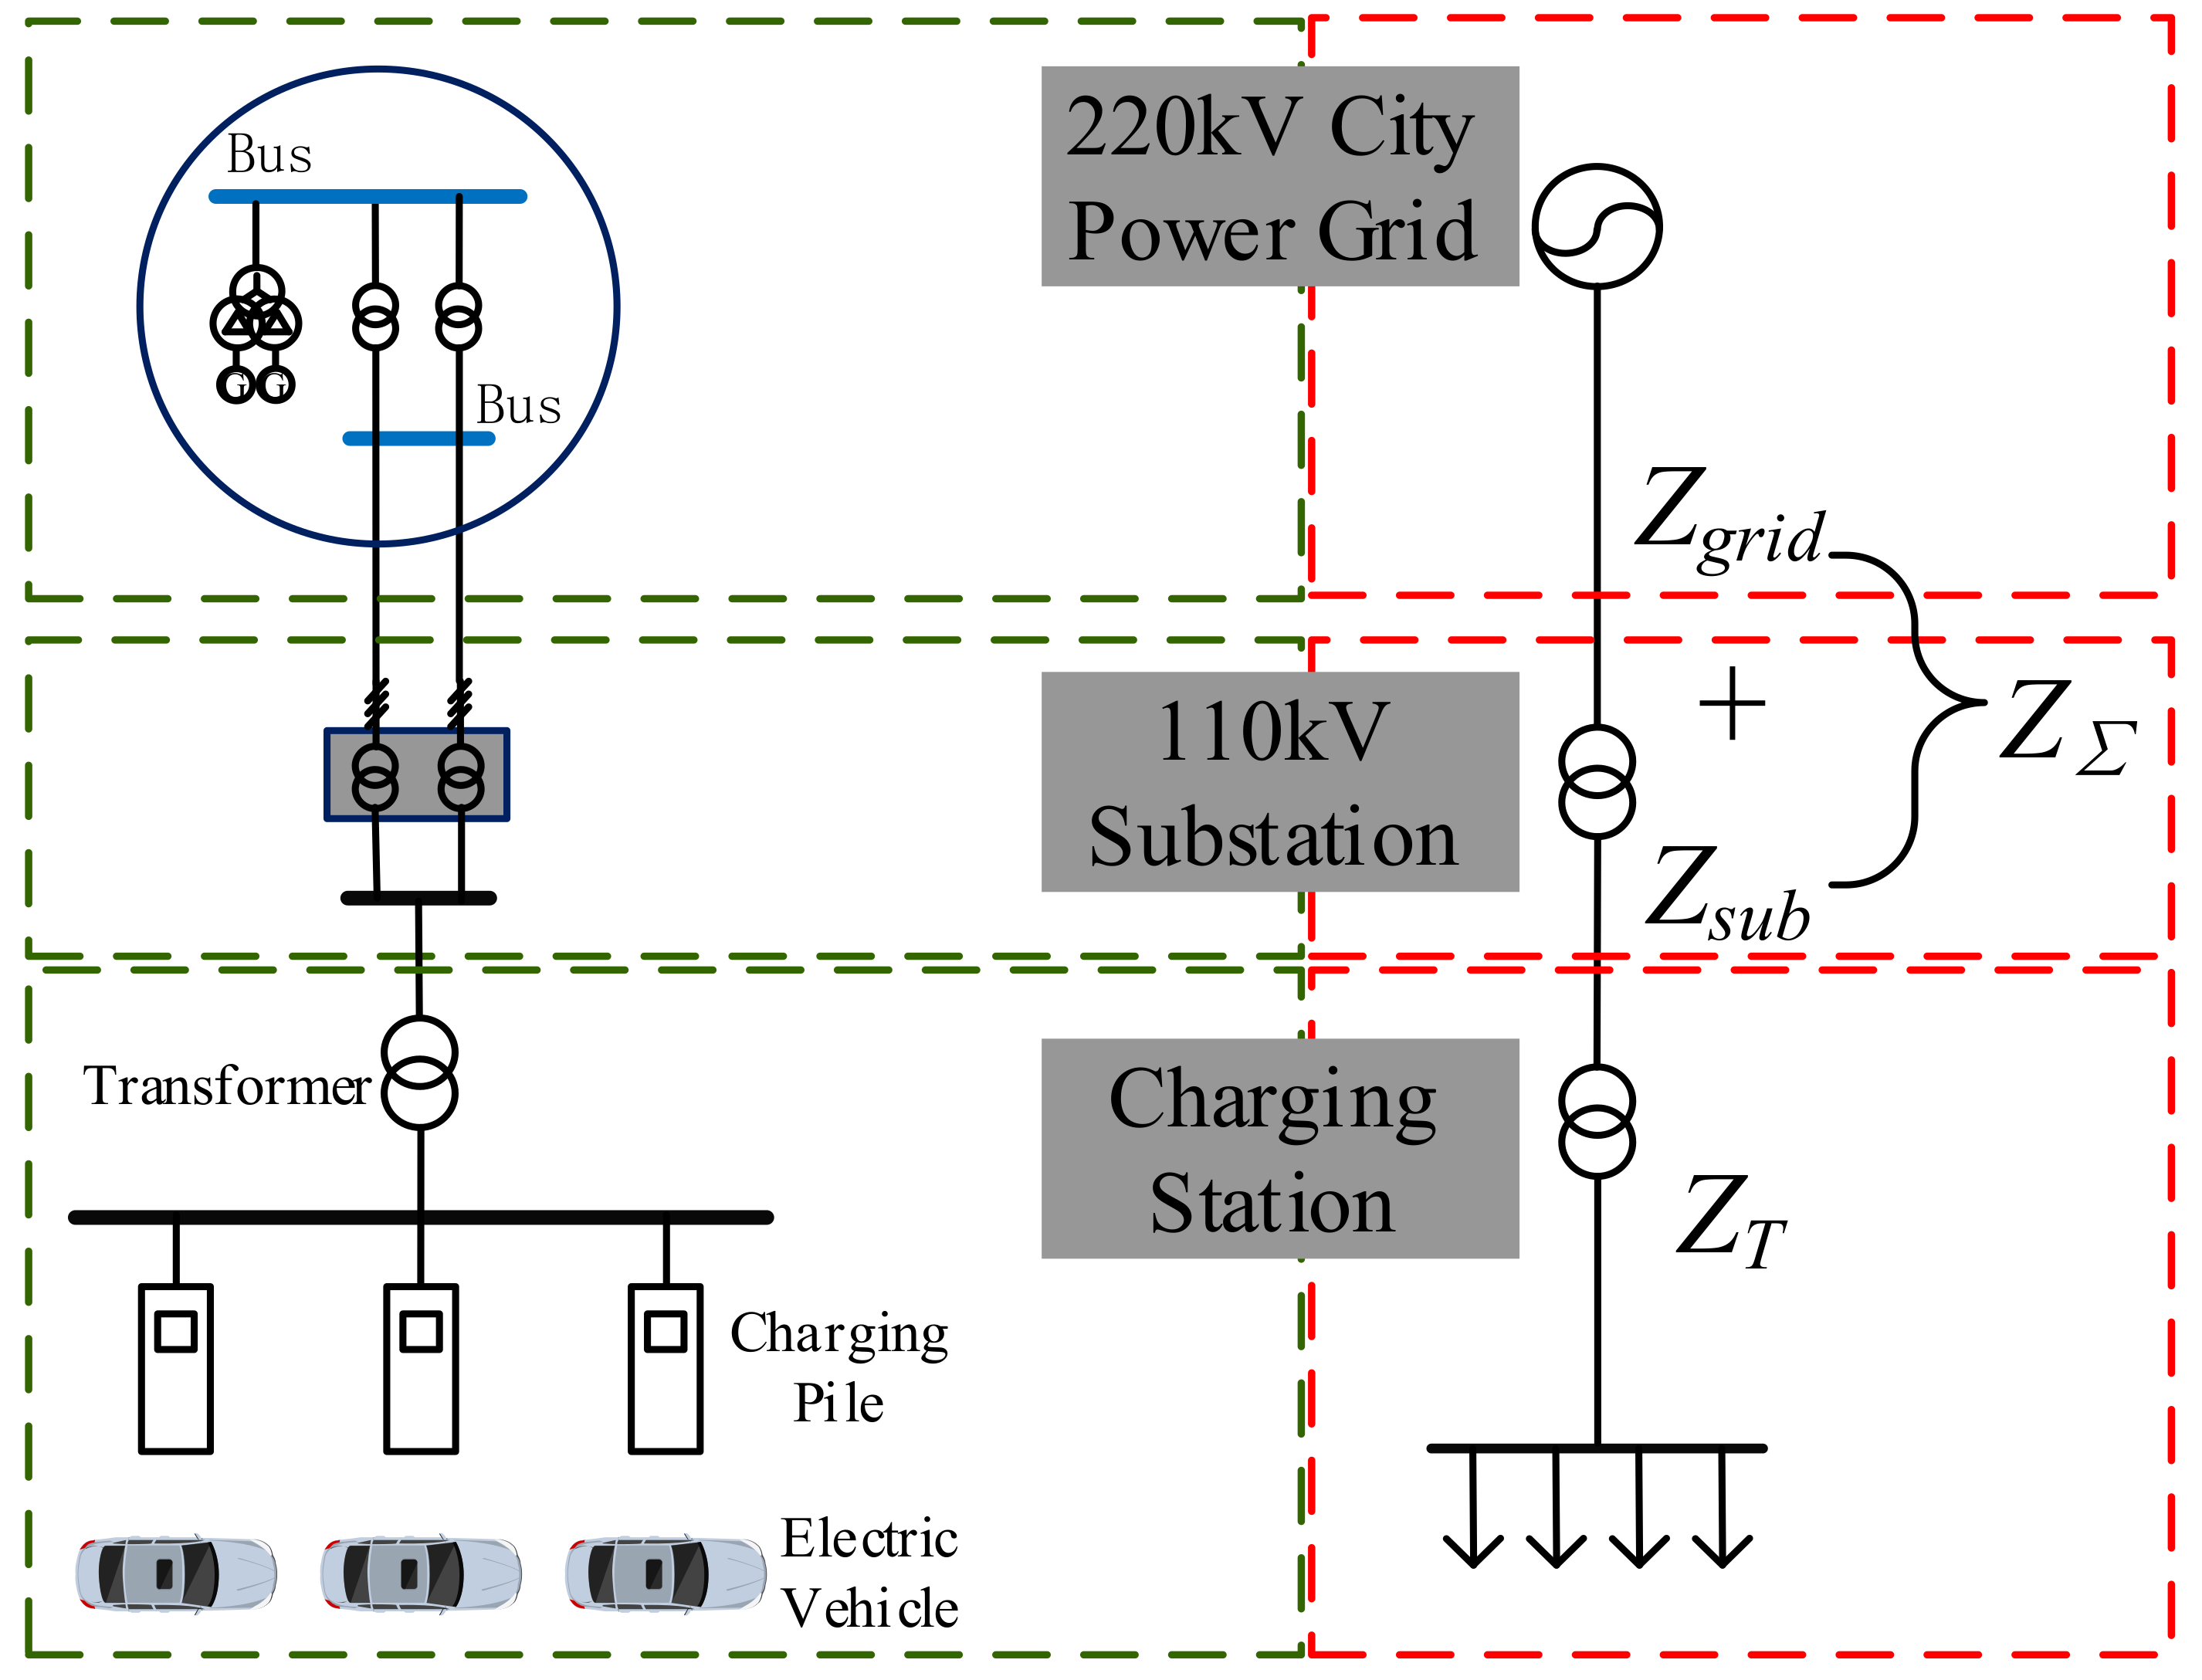 Energies Free Full Text Electric Vehicle Fast Charging Station Ev Stations Wiring Diagram No